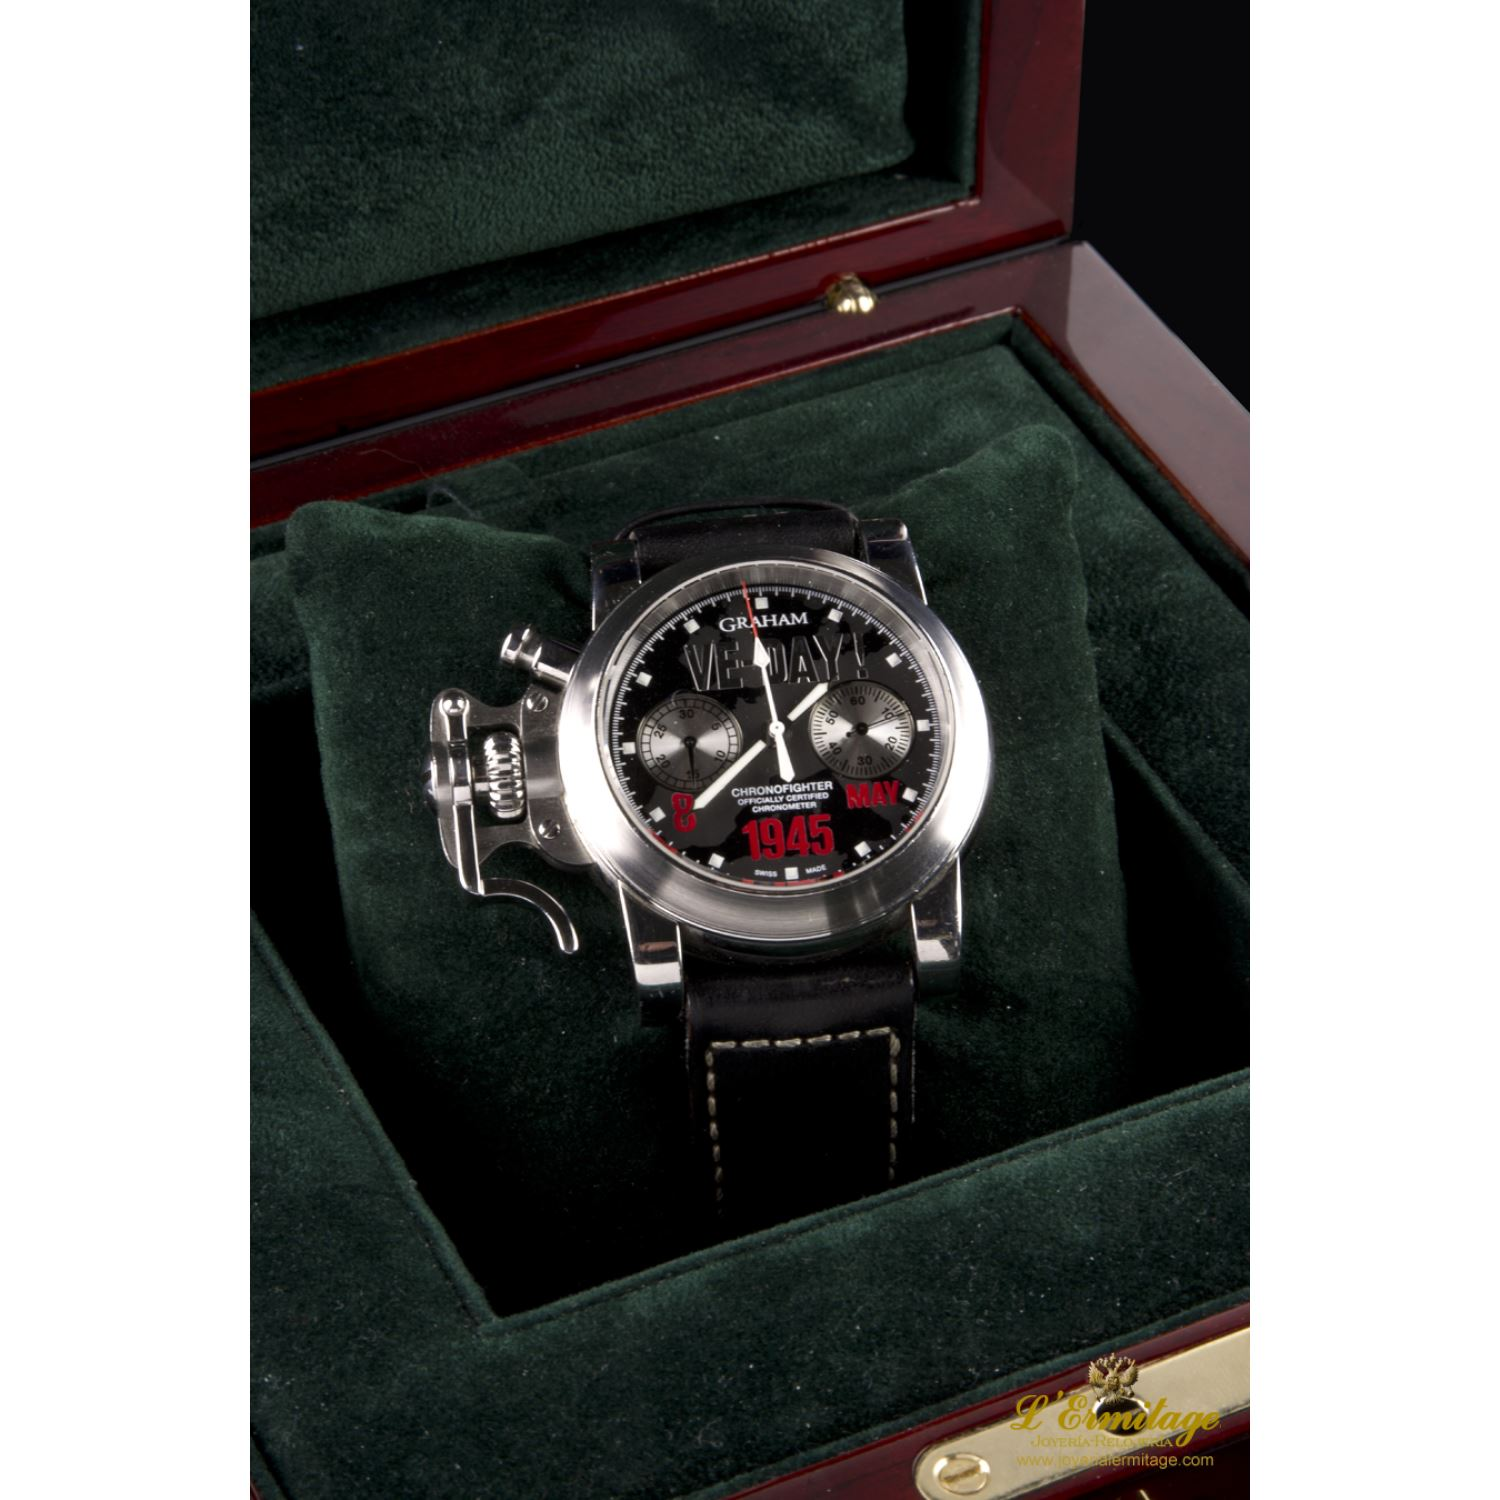 CHRONOFIGHTER VE-DAY LIMITED EDITION